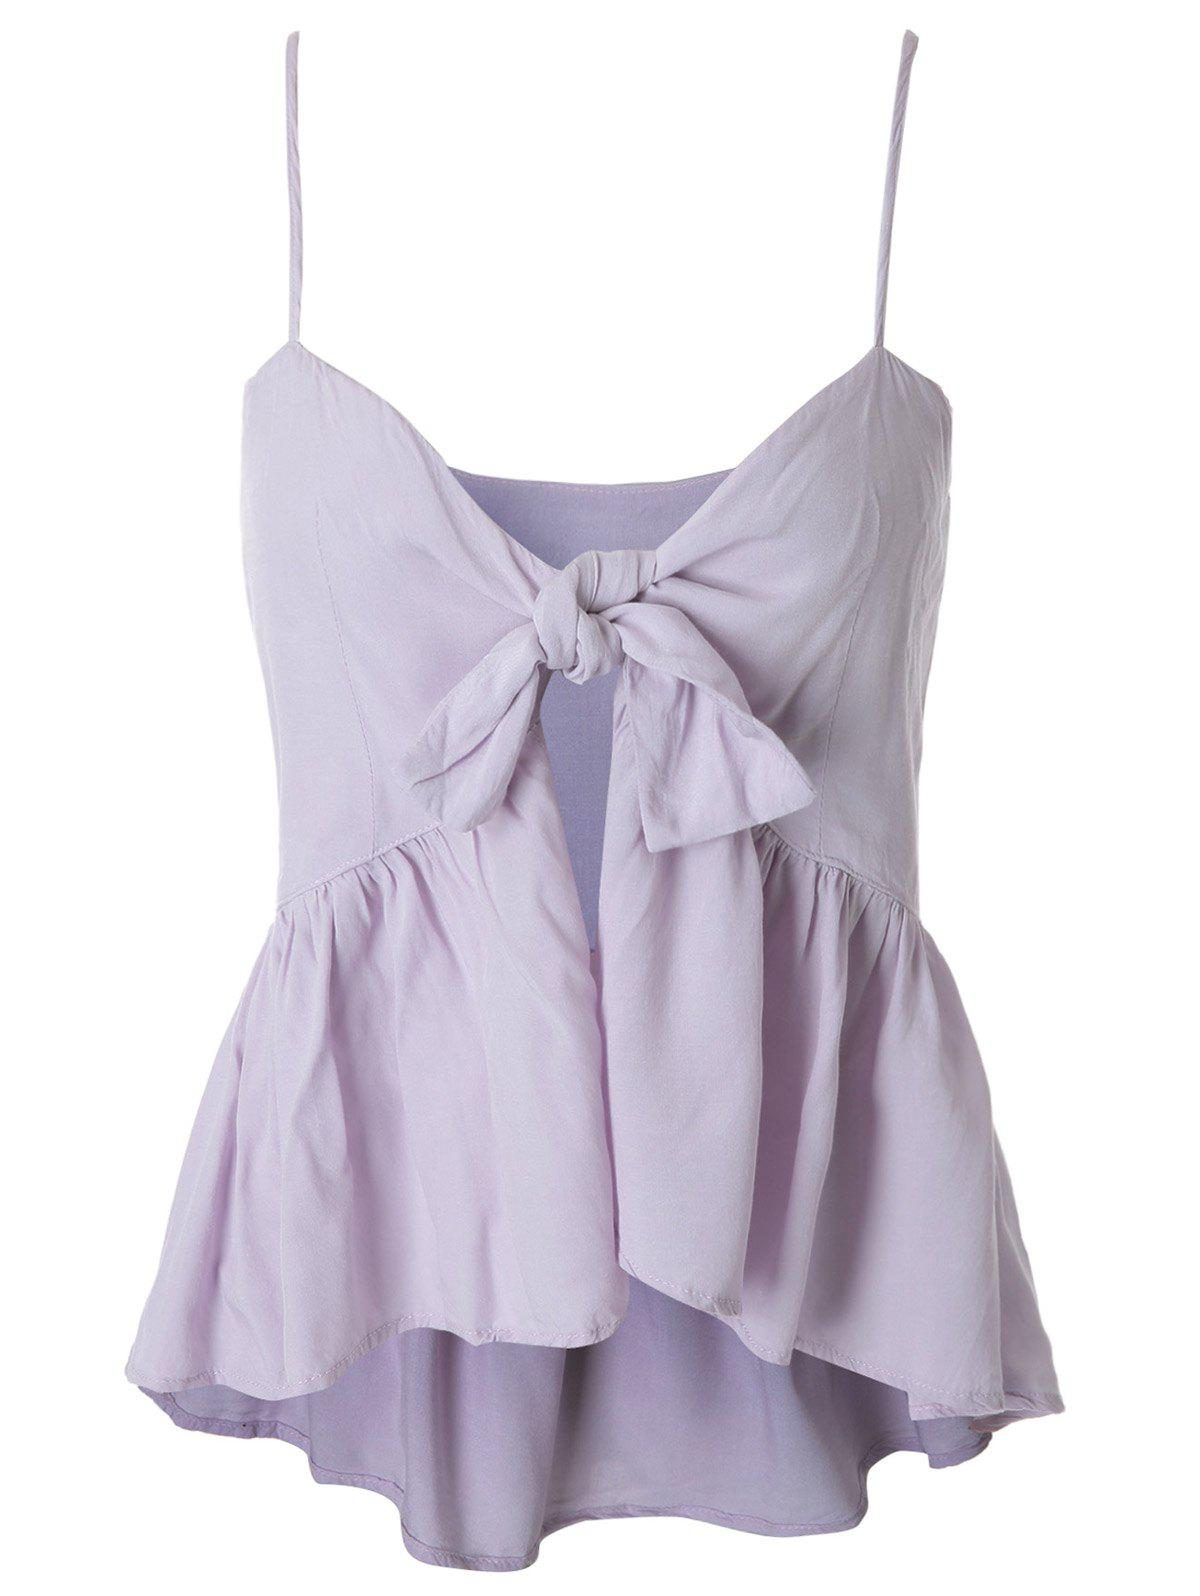 Spaghetti Strap Tie Knot Slit Peplum Tank Top - LIGHT PURPLE M